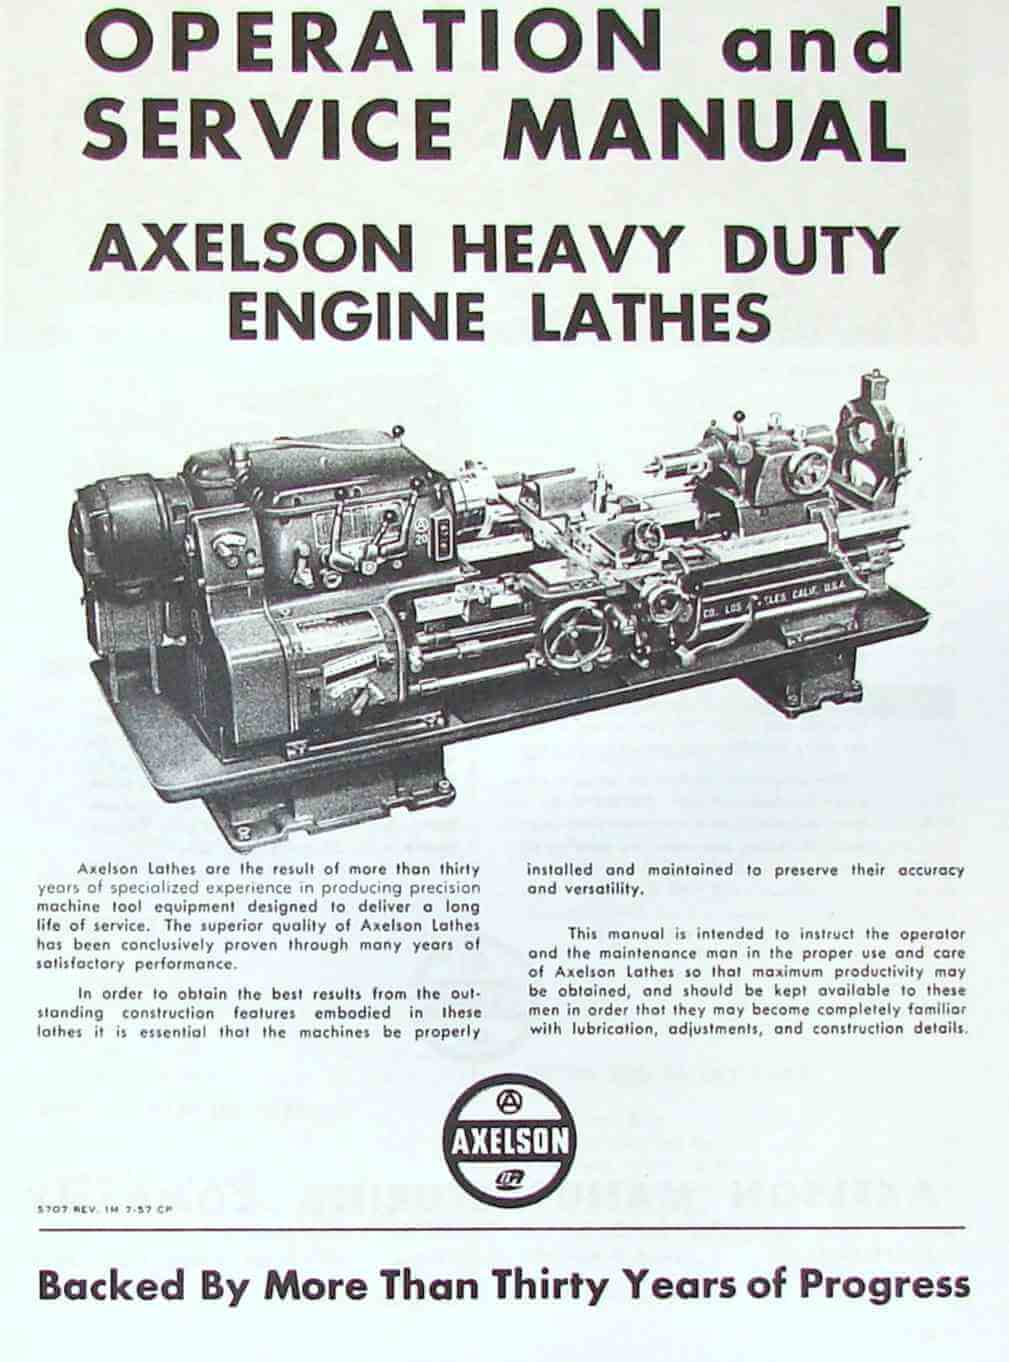 Axelson Lathe Wiring Diagram Schematic Diagrams South Bend House Symbols U2022 Machine For Electrical